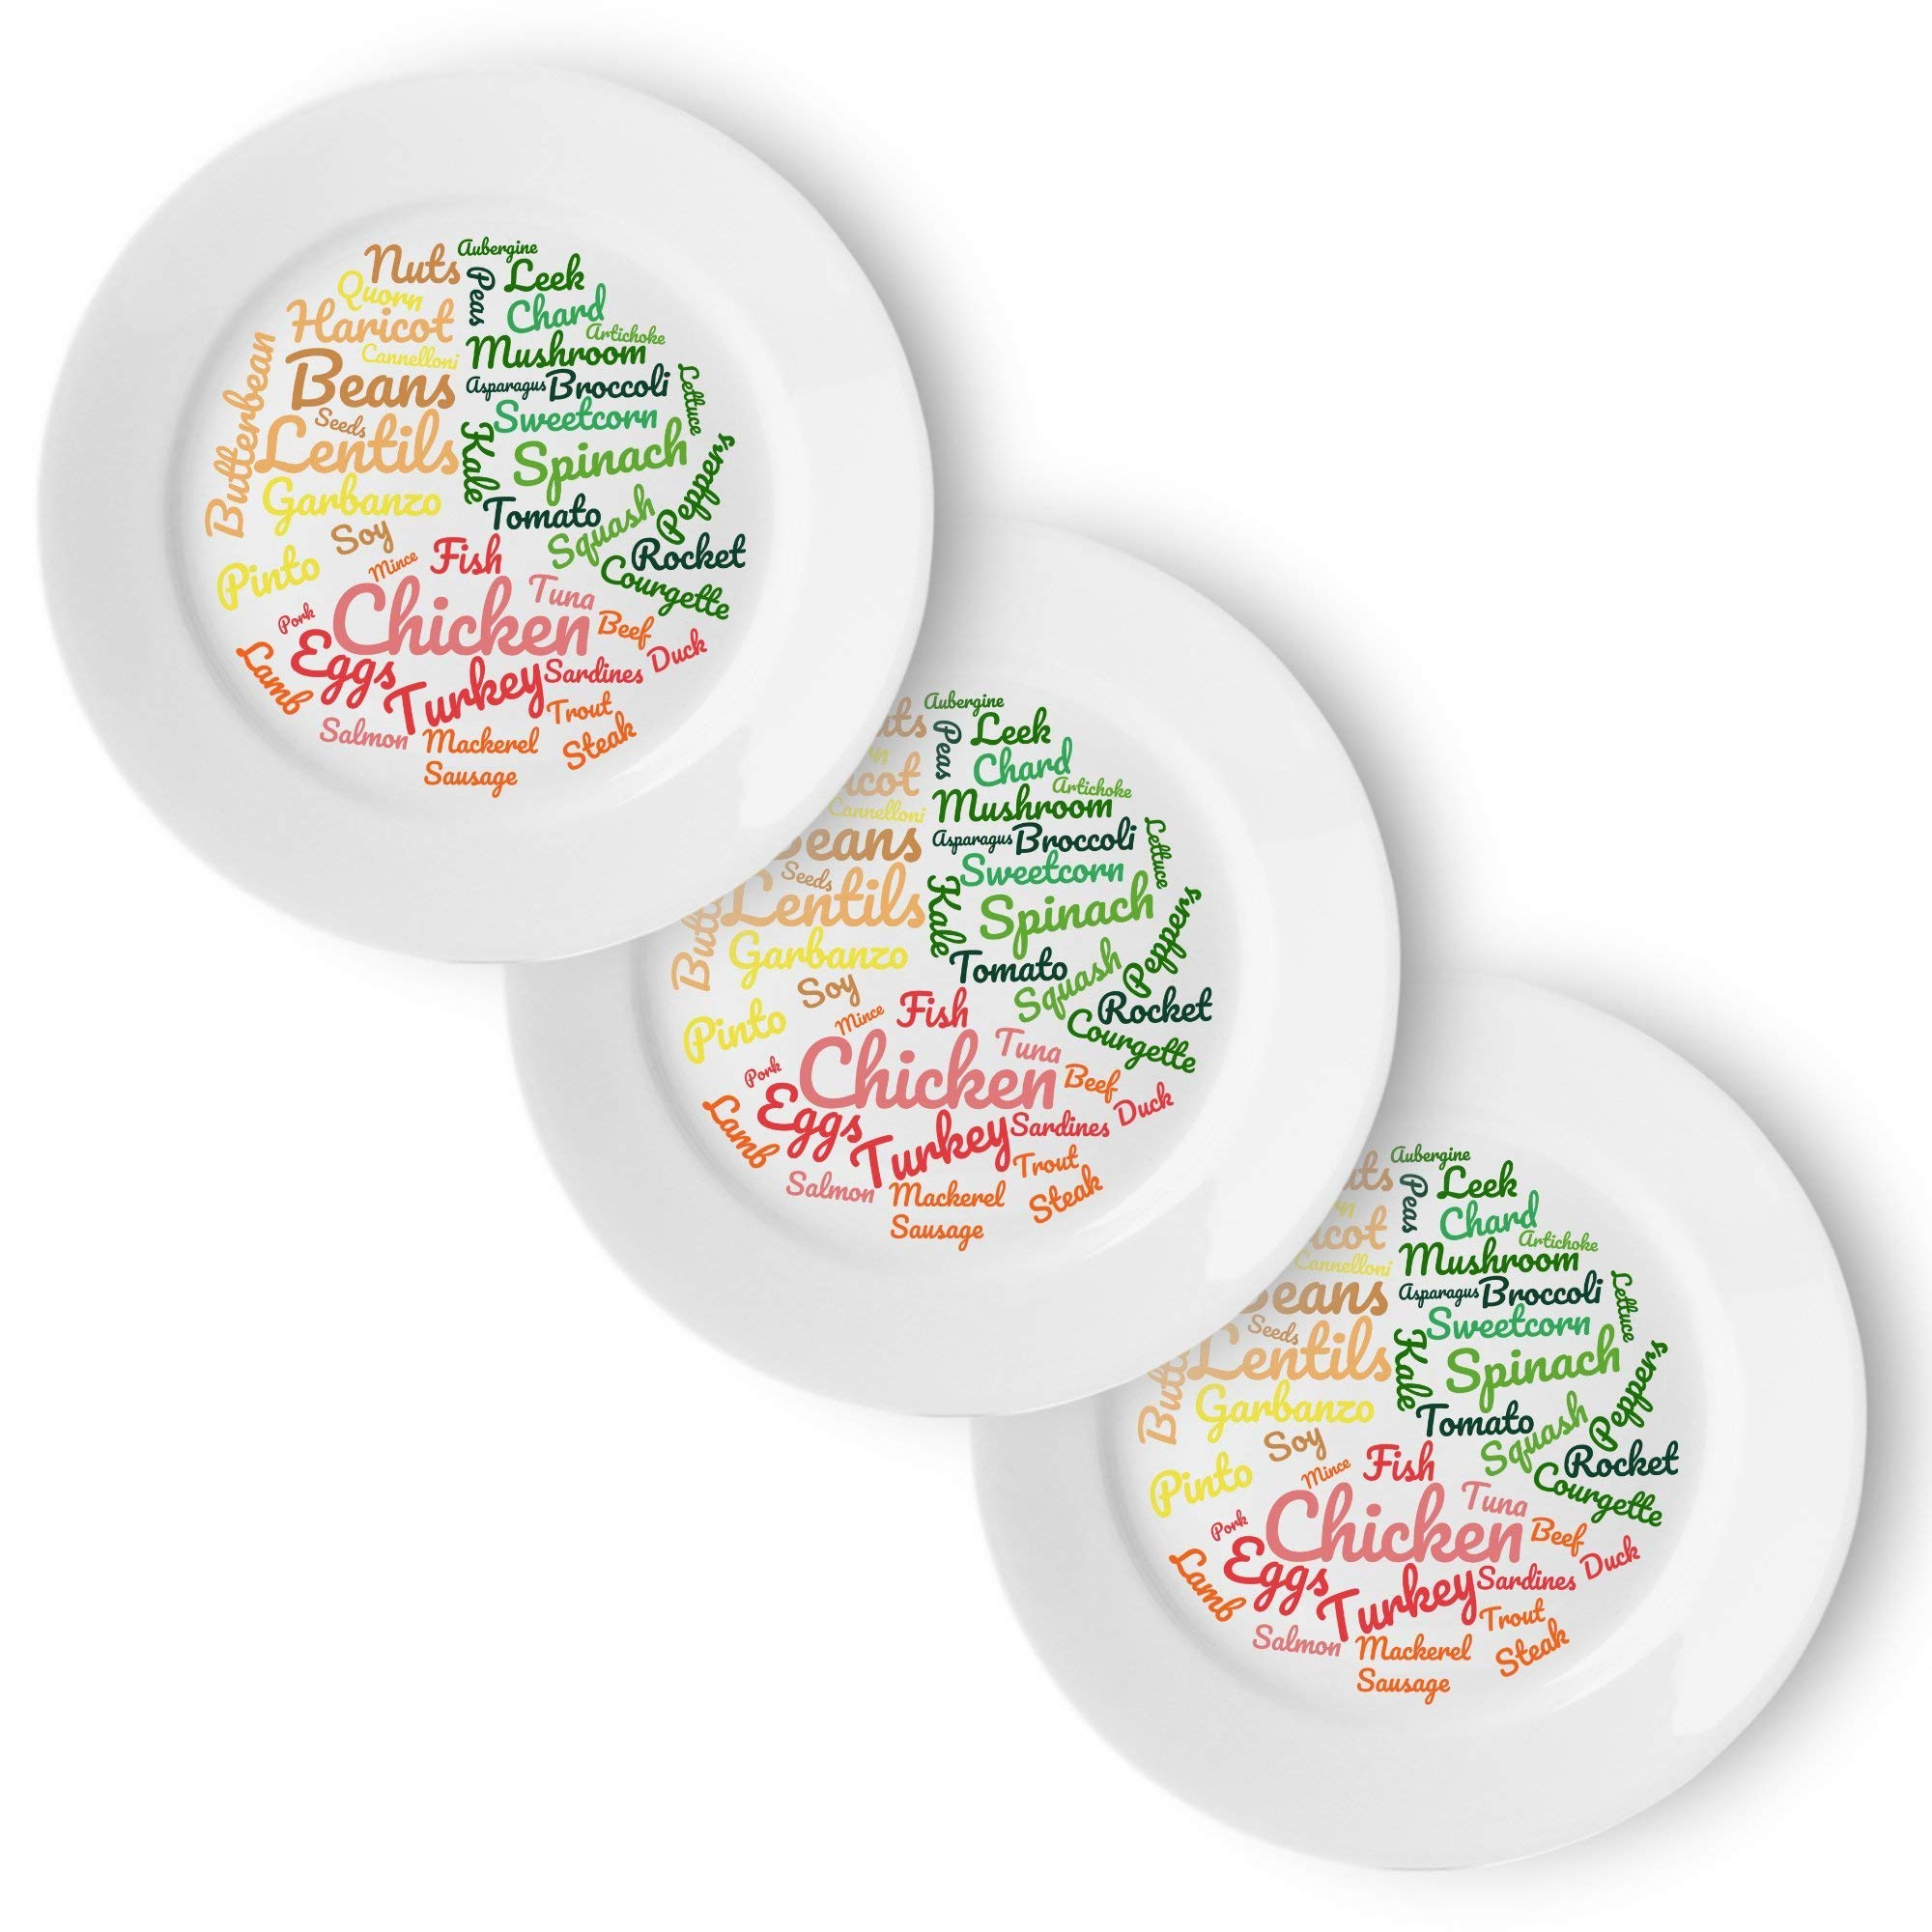 Low Carb Healthy Eating Plate (3 Pack)   Easy Sections to Follow a Low Carbohydrate/High Protein Diet   10 inch Meal Plate for Food Ideas & Portion Control for Sustainable Weight Loss